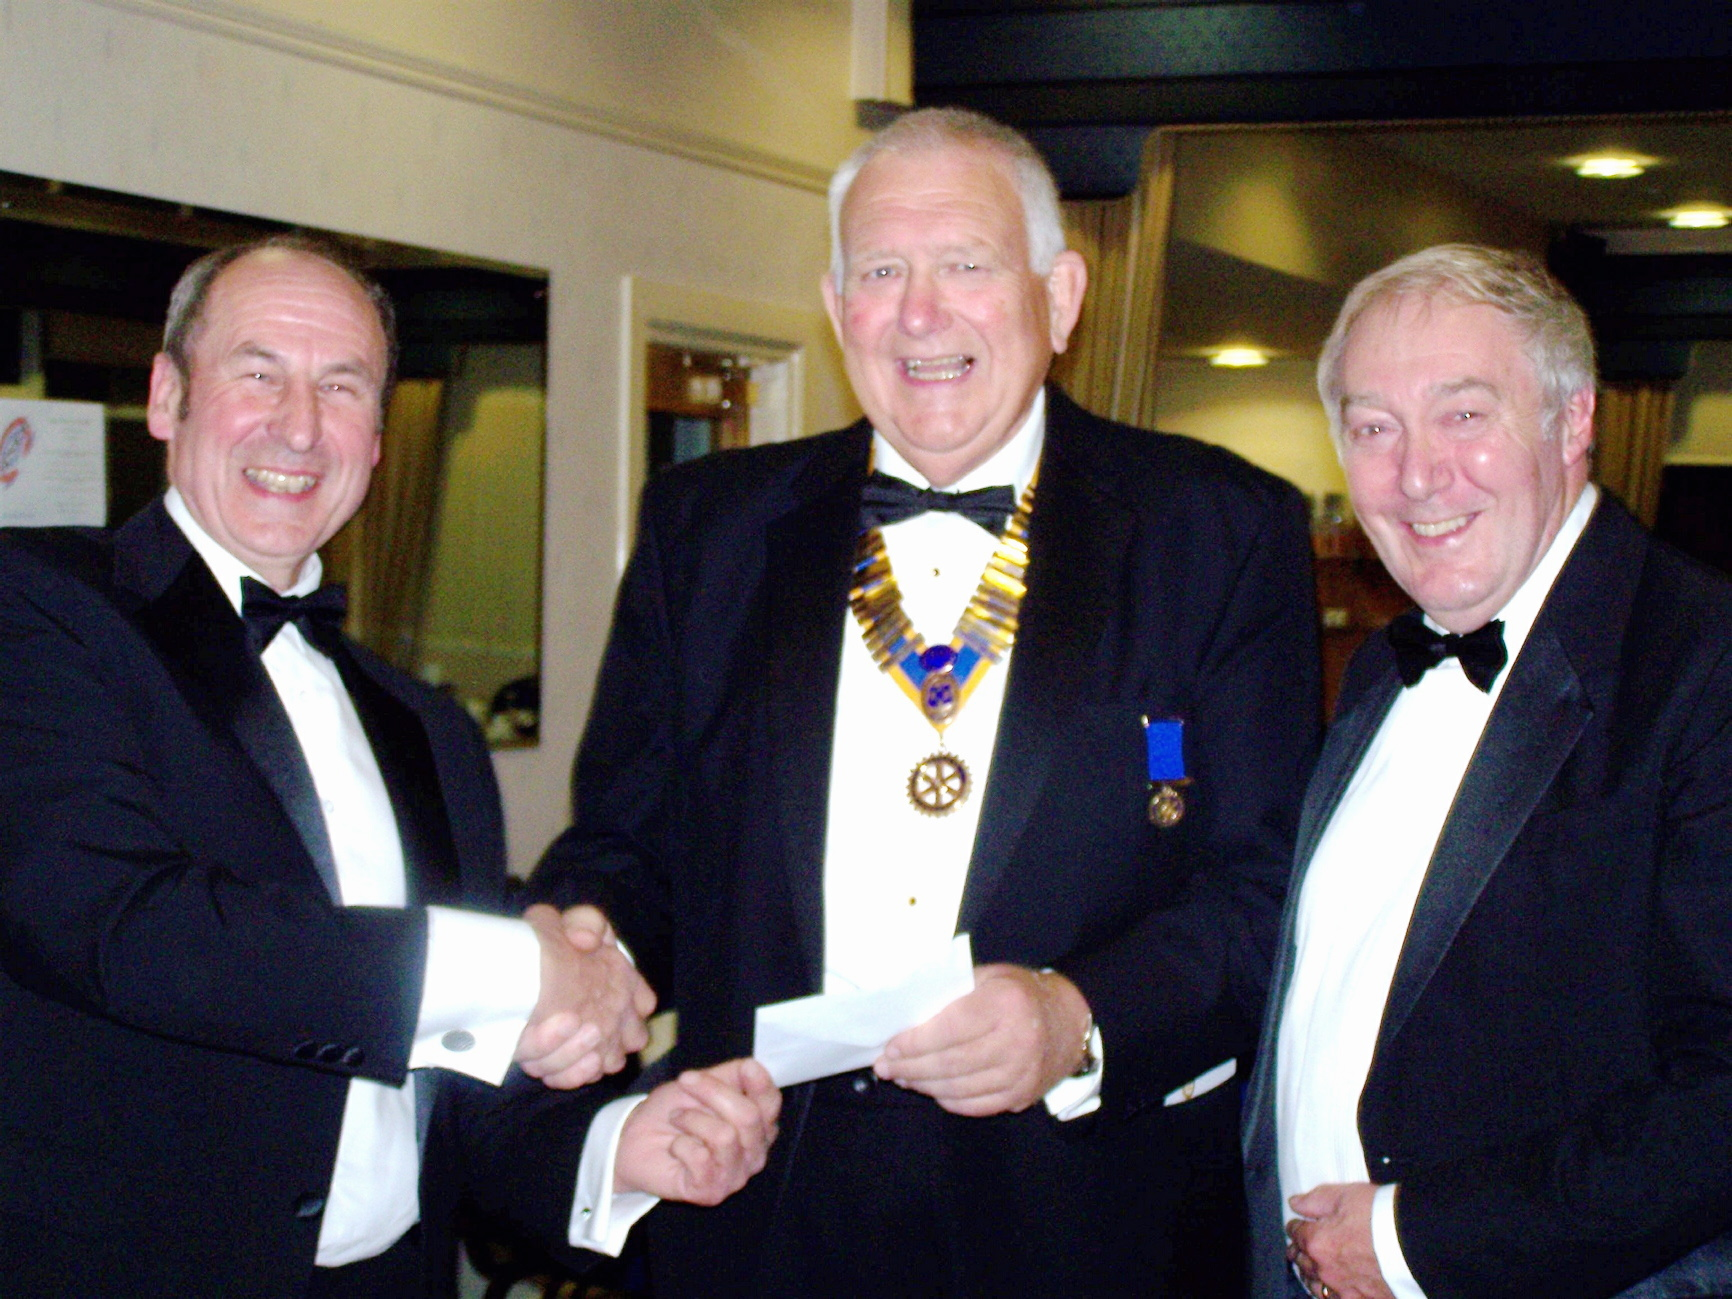 From left are Otley Beer Festival committee member Alan Raw, president of the Rotary Club of Otley Keith Thompson, and committee member Jeff Utley